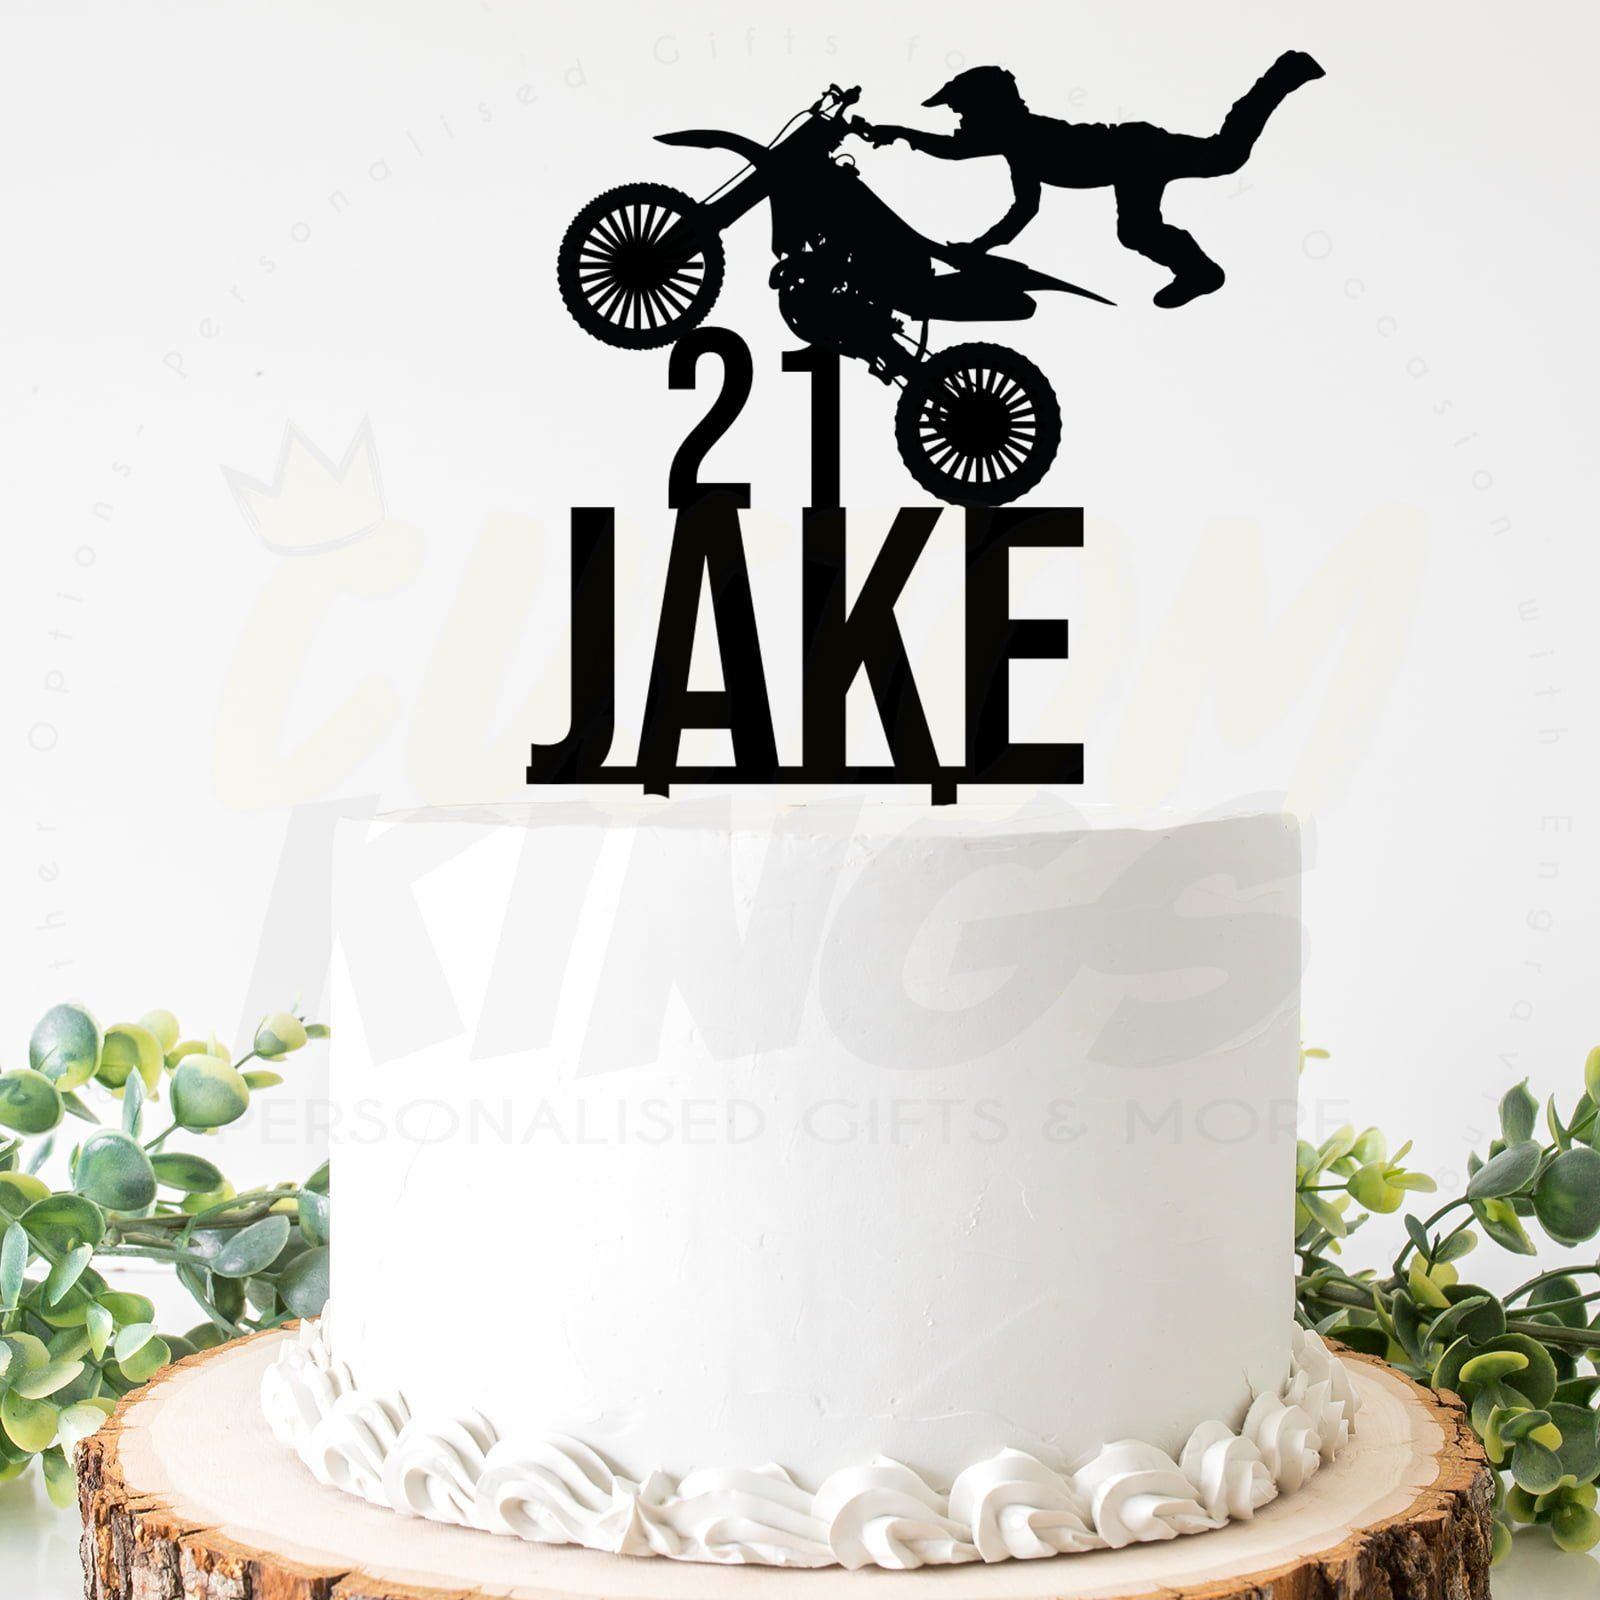 Pictures On Motocross Cakes For Birthdays